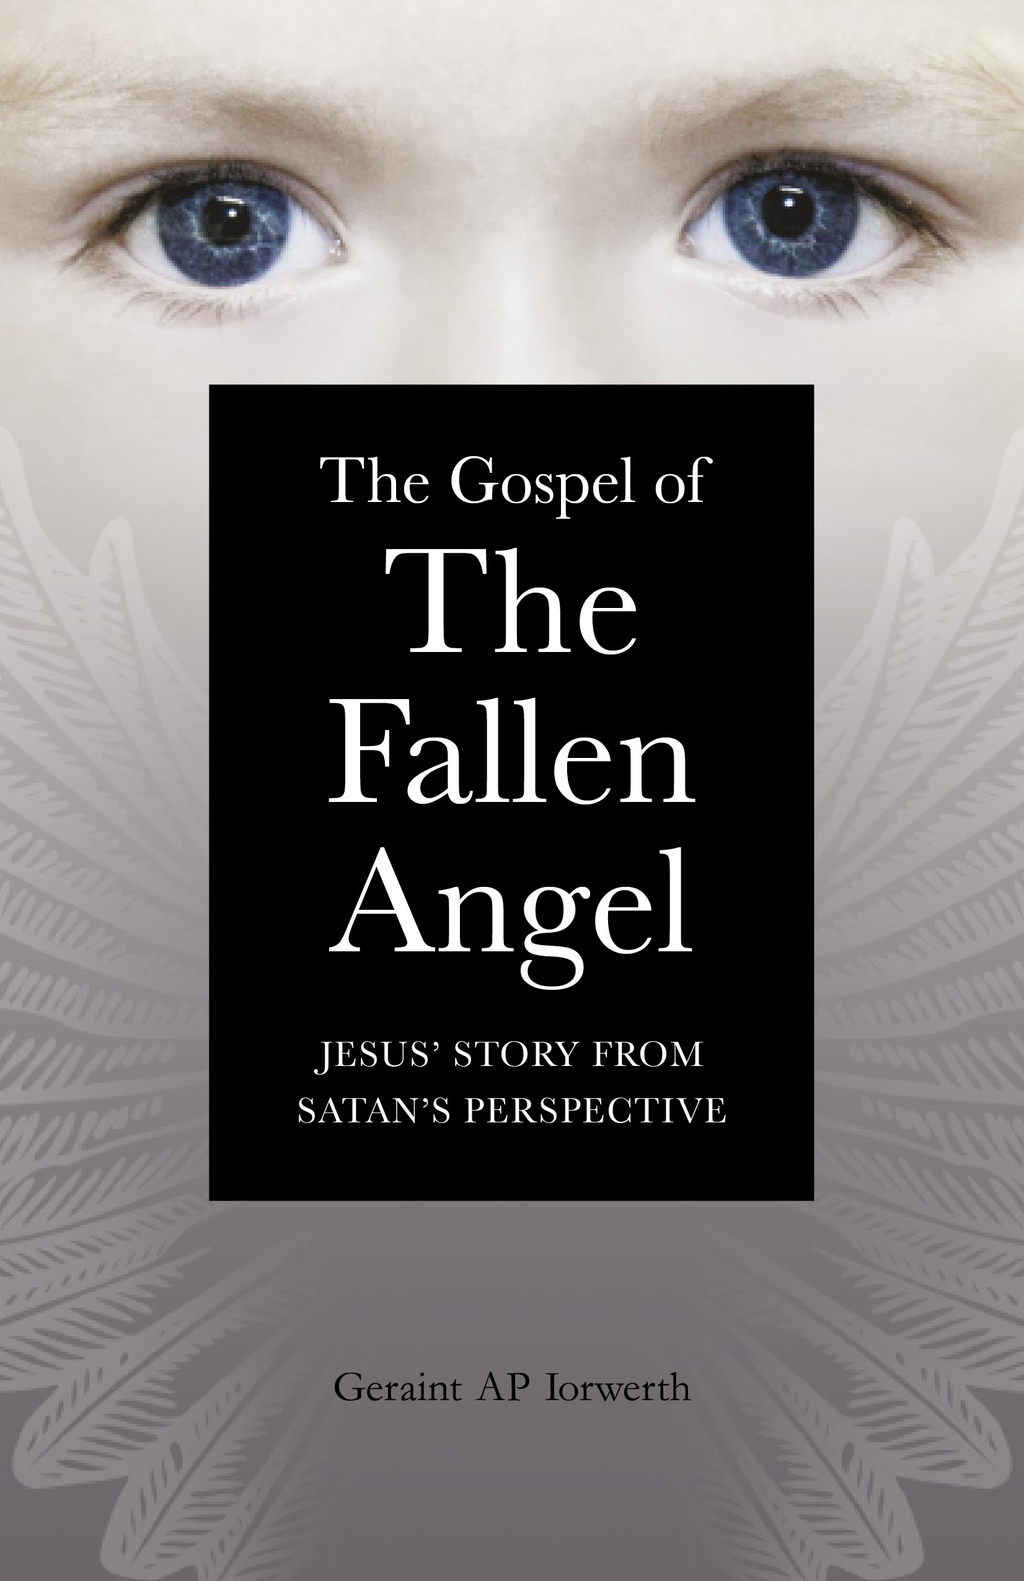 The Gospel of the Fallen Angel: Jesus' Story from Satan's Perspective By: Master Geraint Ap Iorwerth